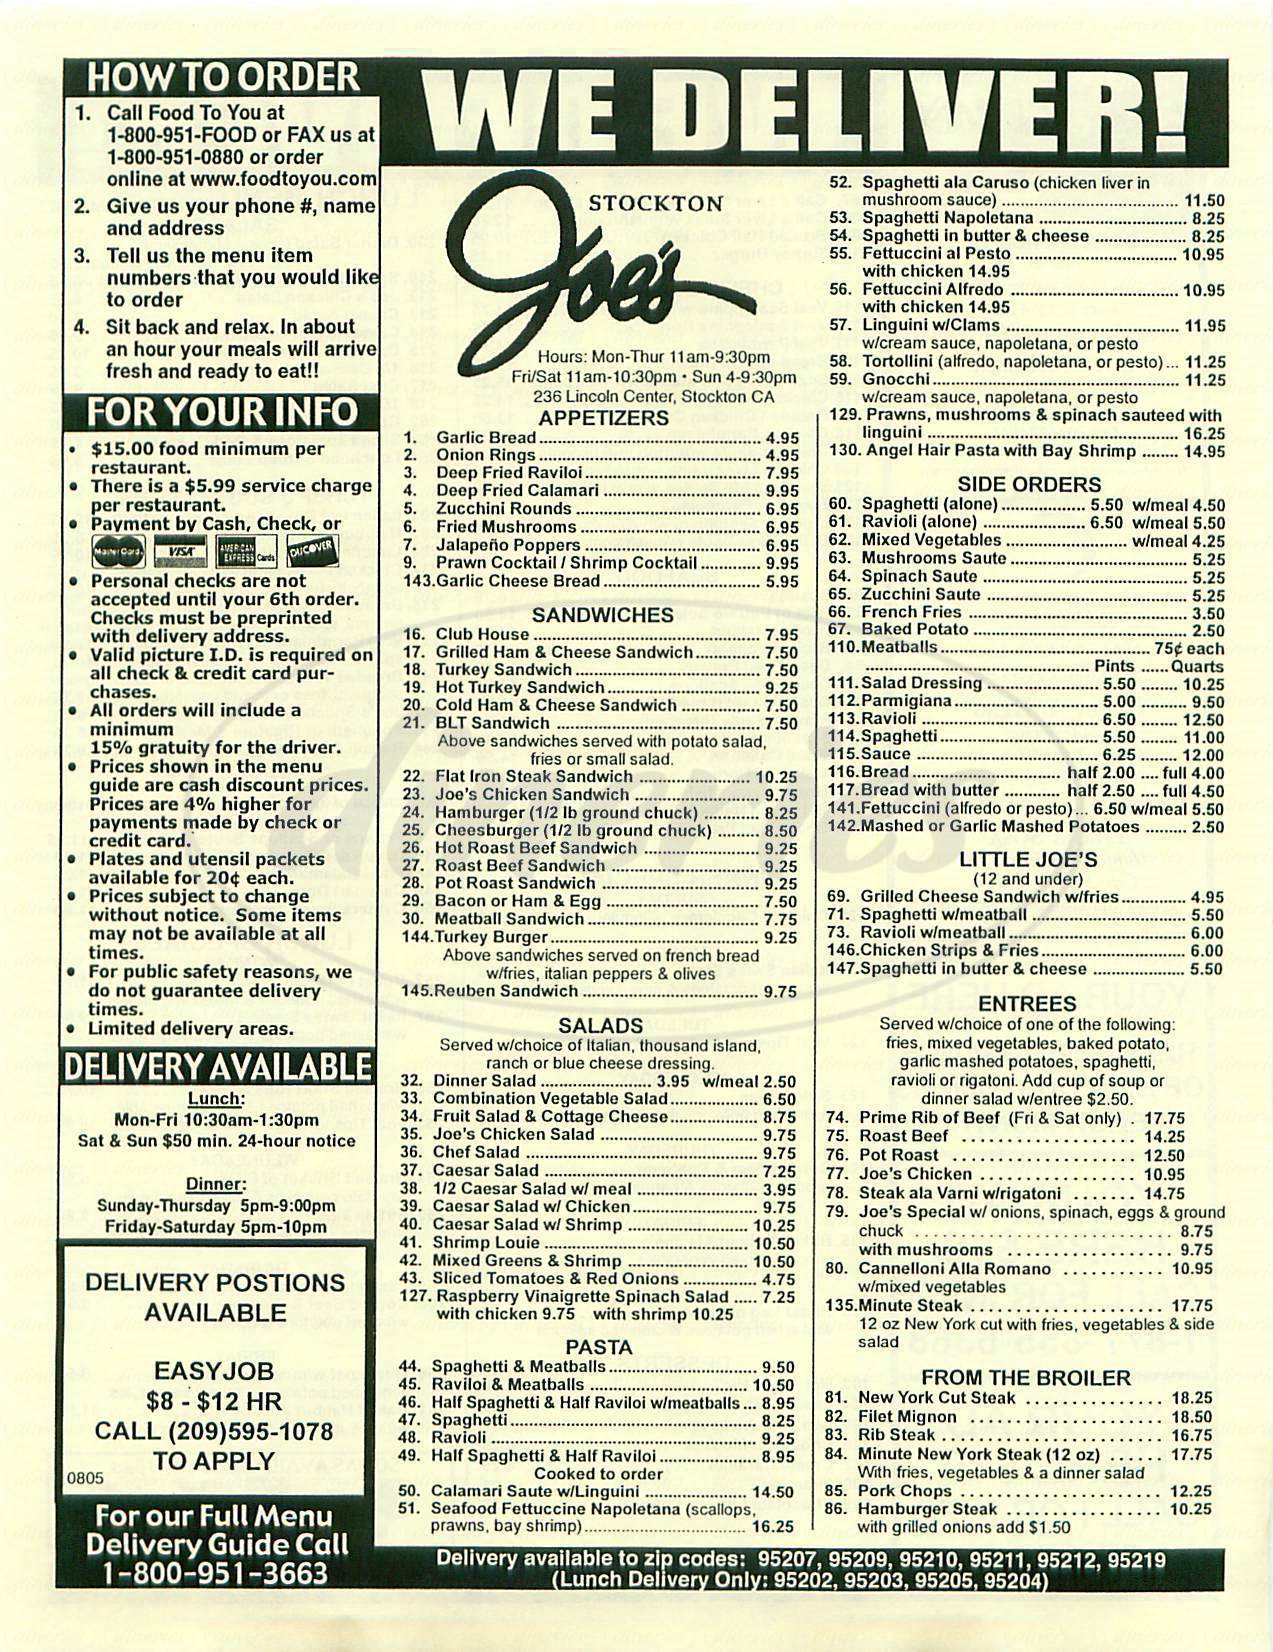 menu for Stockton Joes